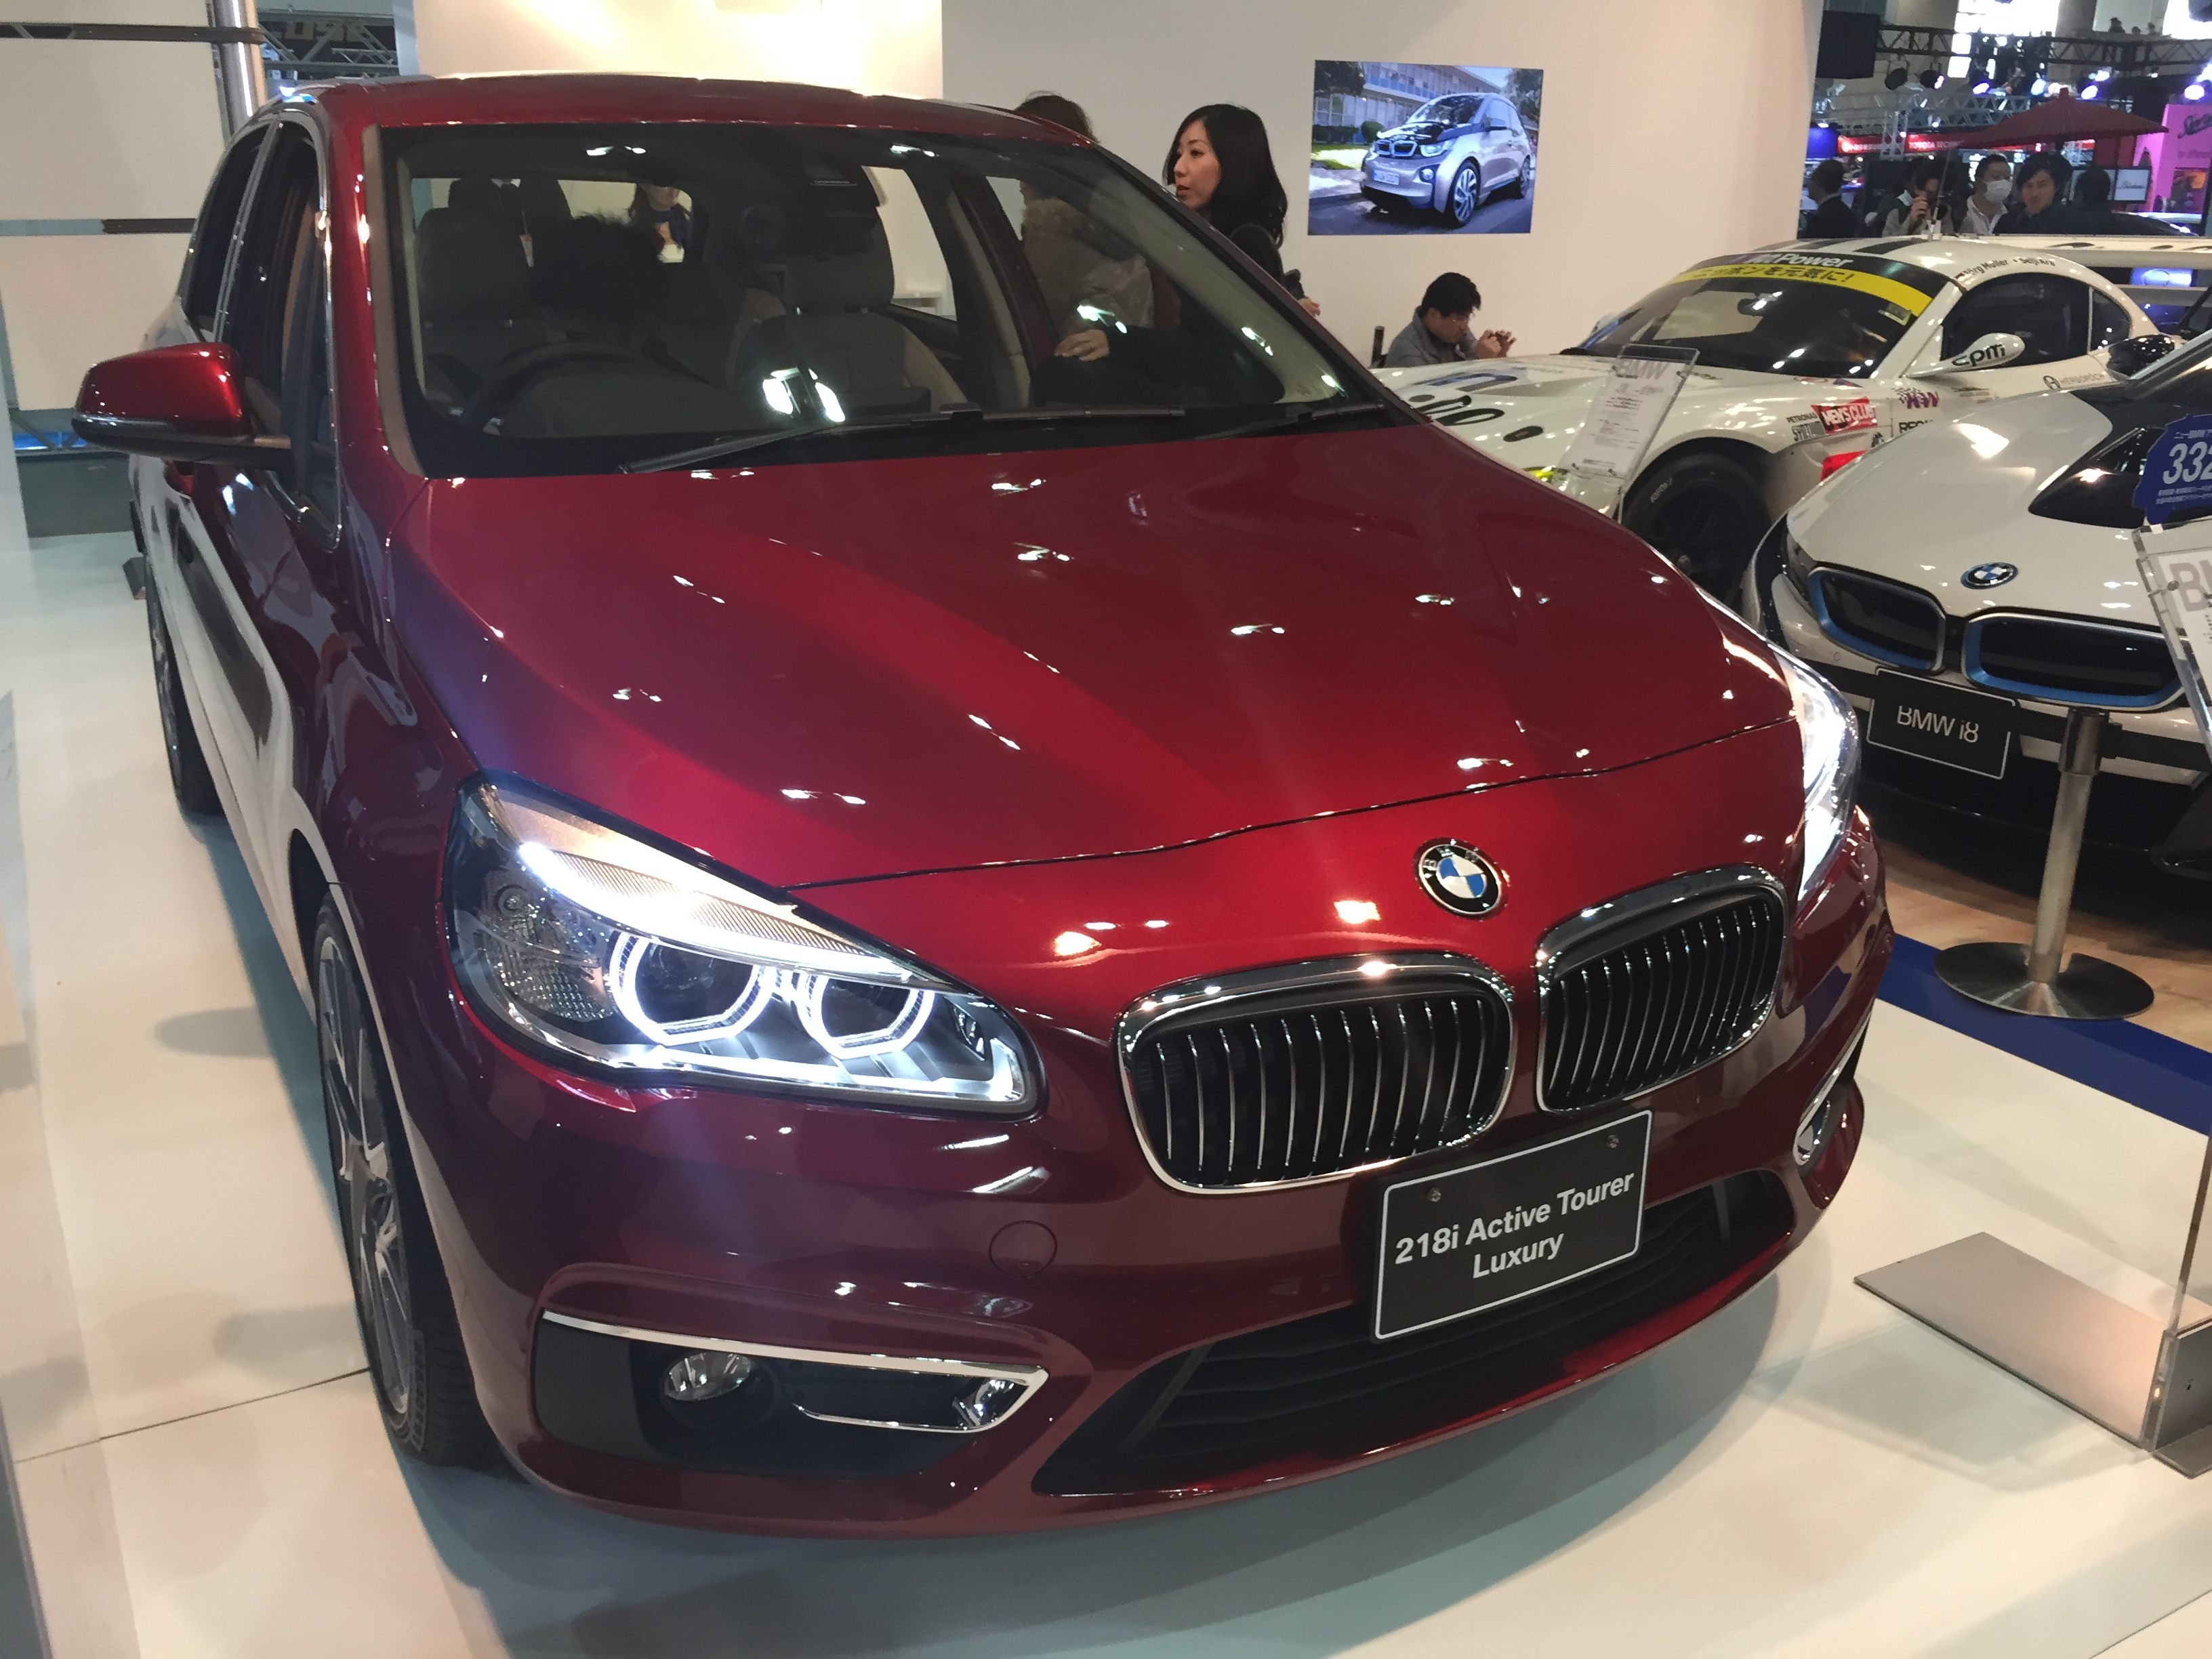 file bmw 218i active tourer luxury front tokyo auto salon wikimedia commons. Black Bedroom Furniture Sets. Home Design Ideas